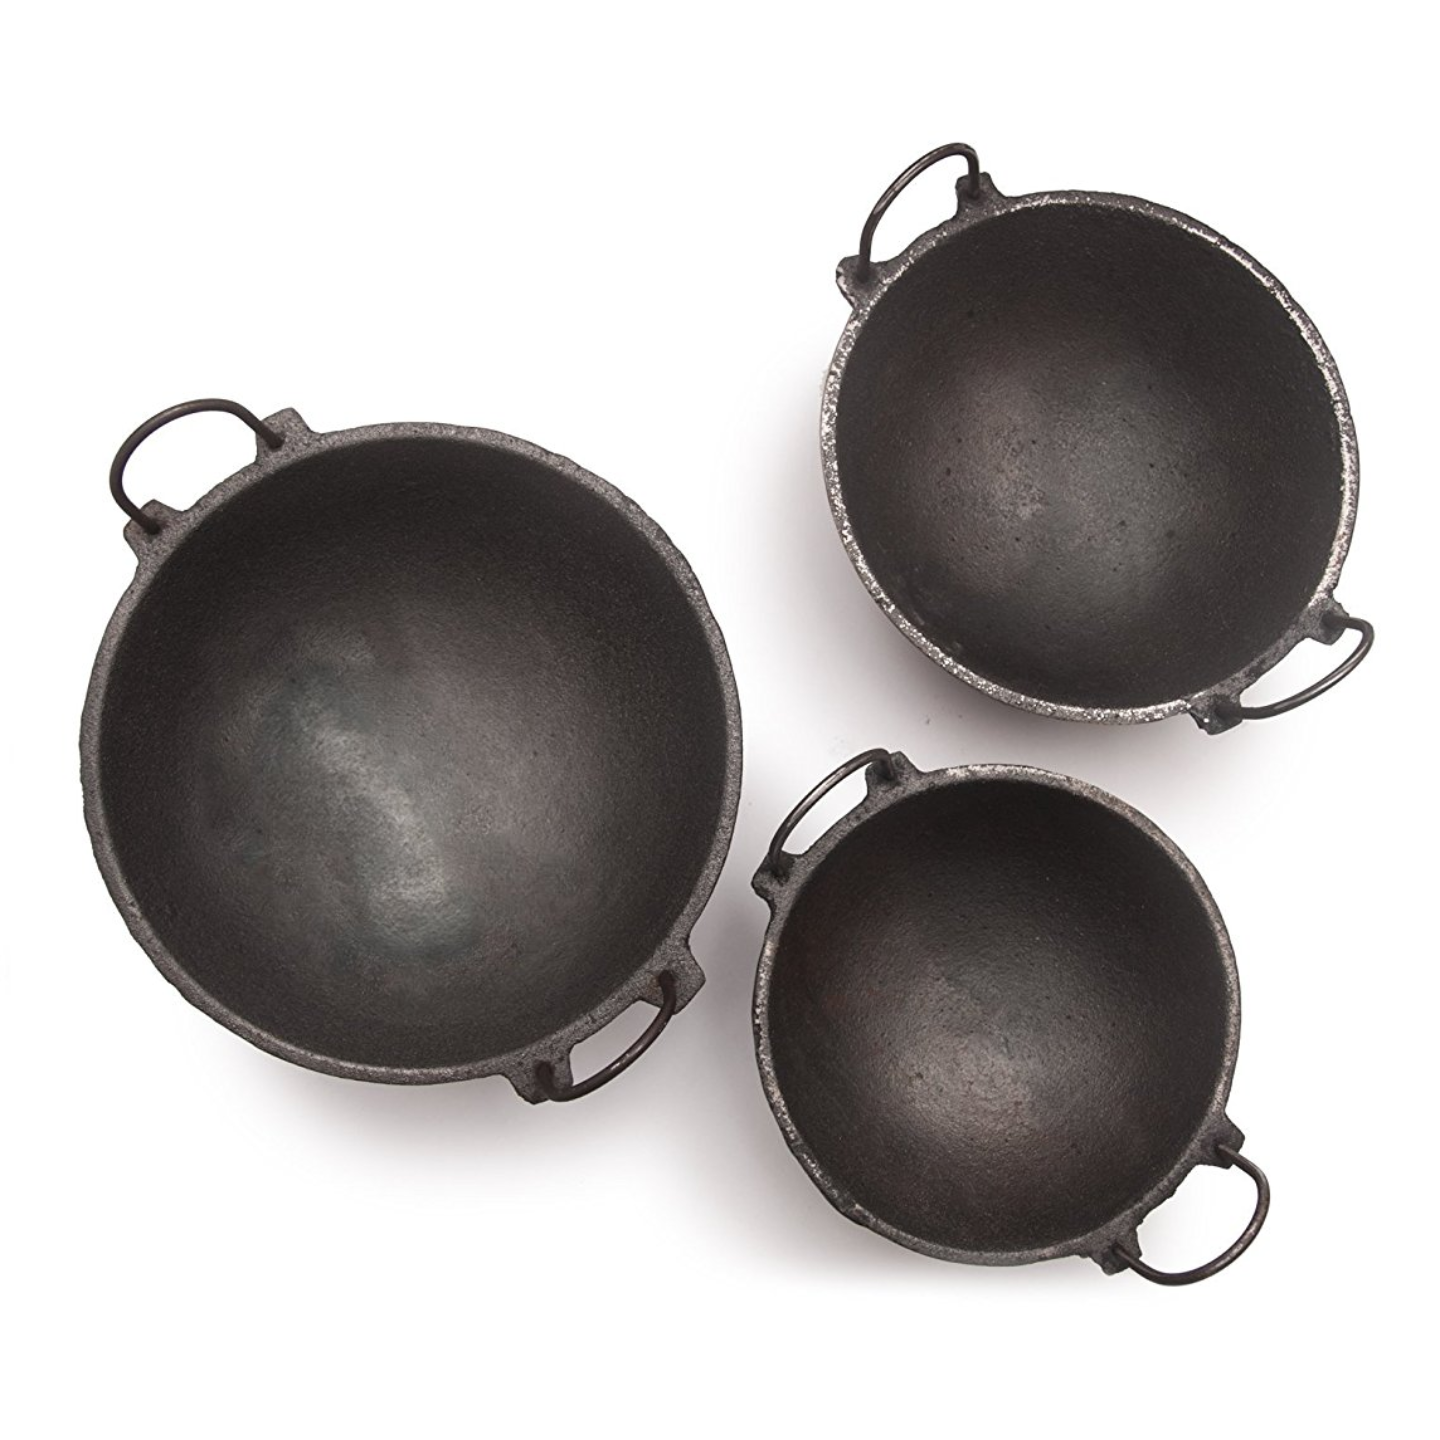 Cast Iron Kadai Combo: 3 Kadais Of 3 Sizes (7 Inches, 8.5 Inches And 11 Inches Diameter)